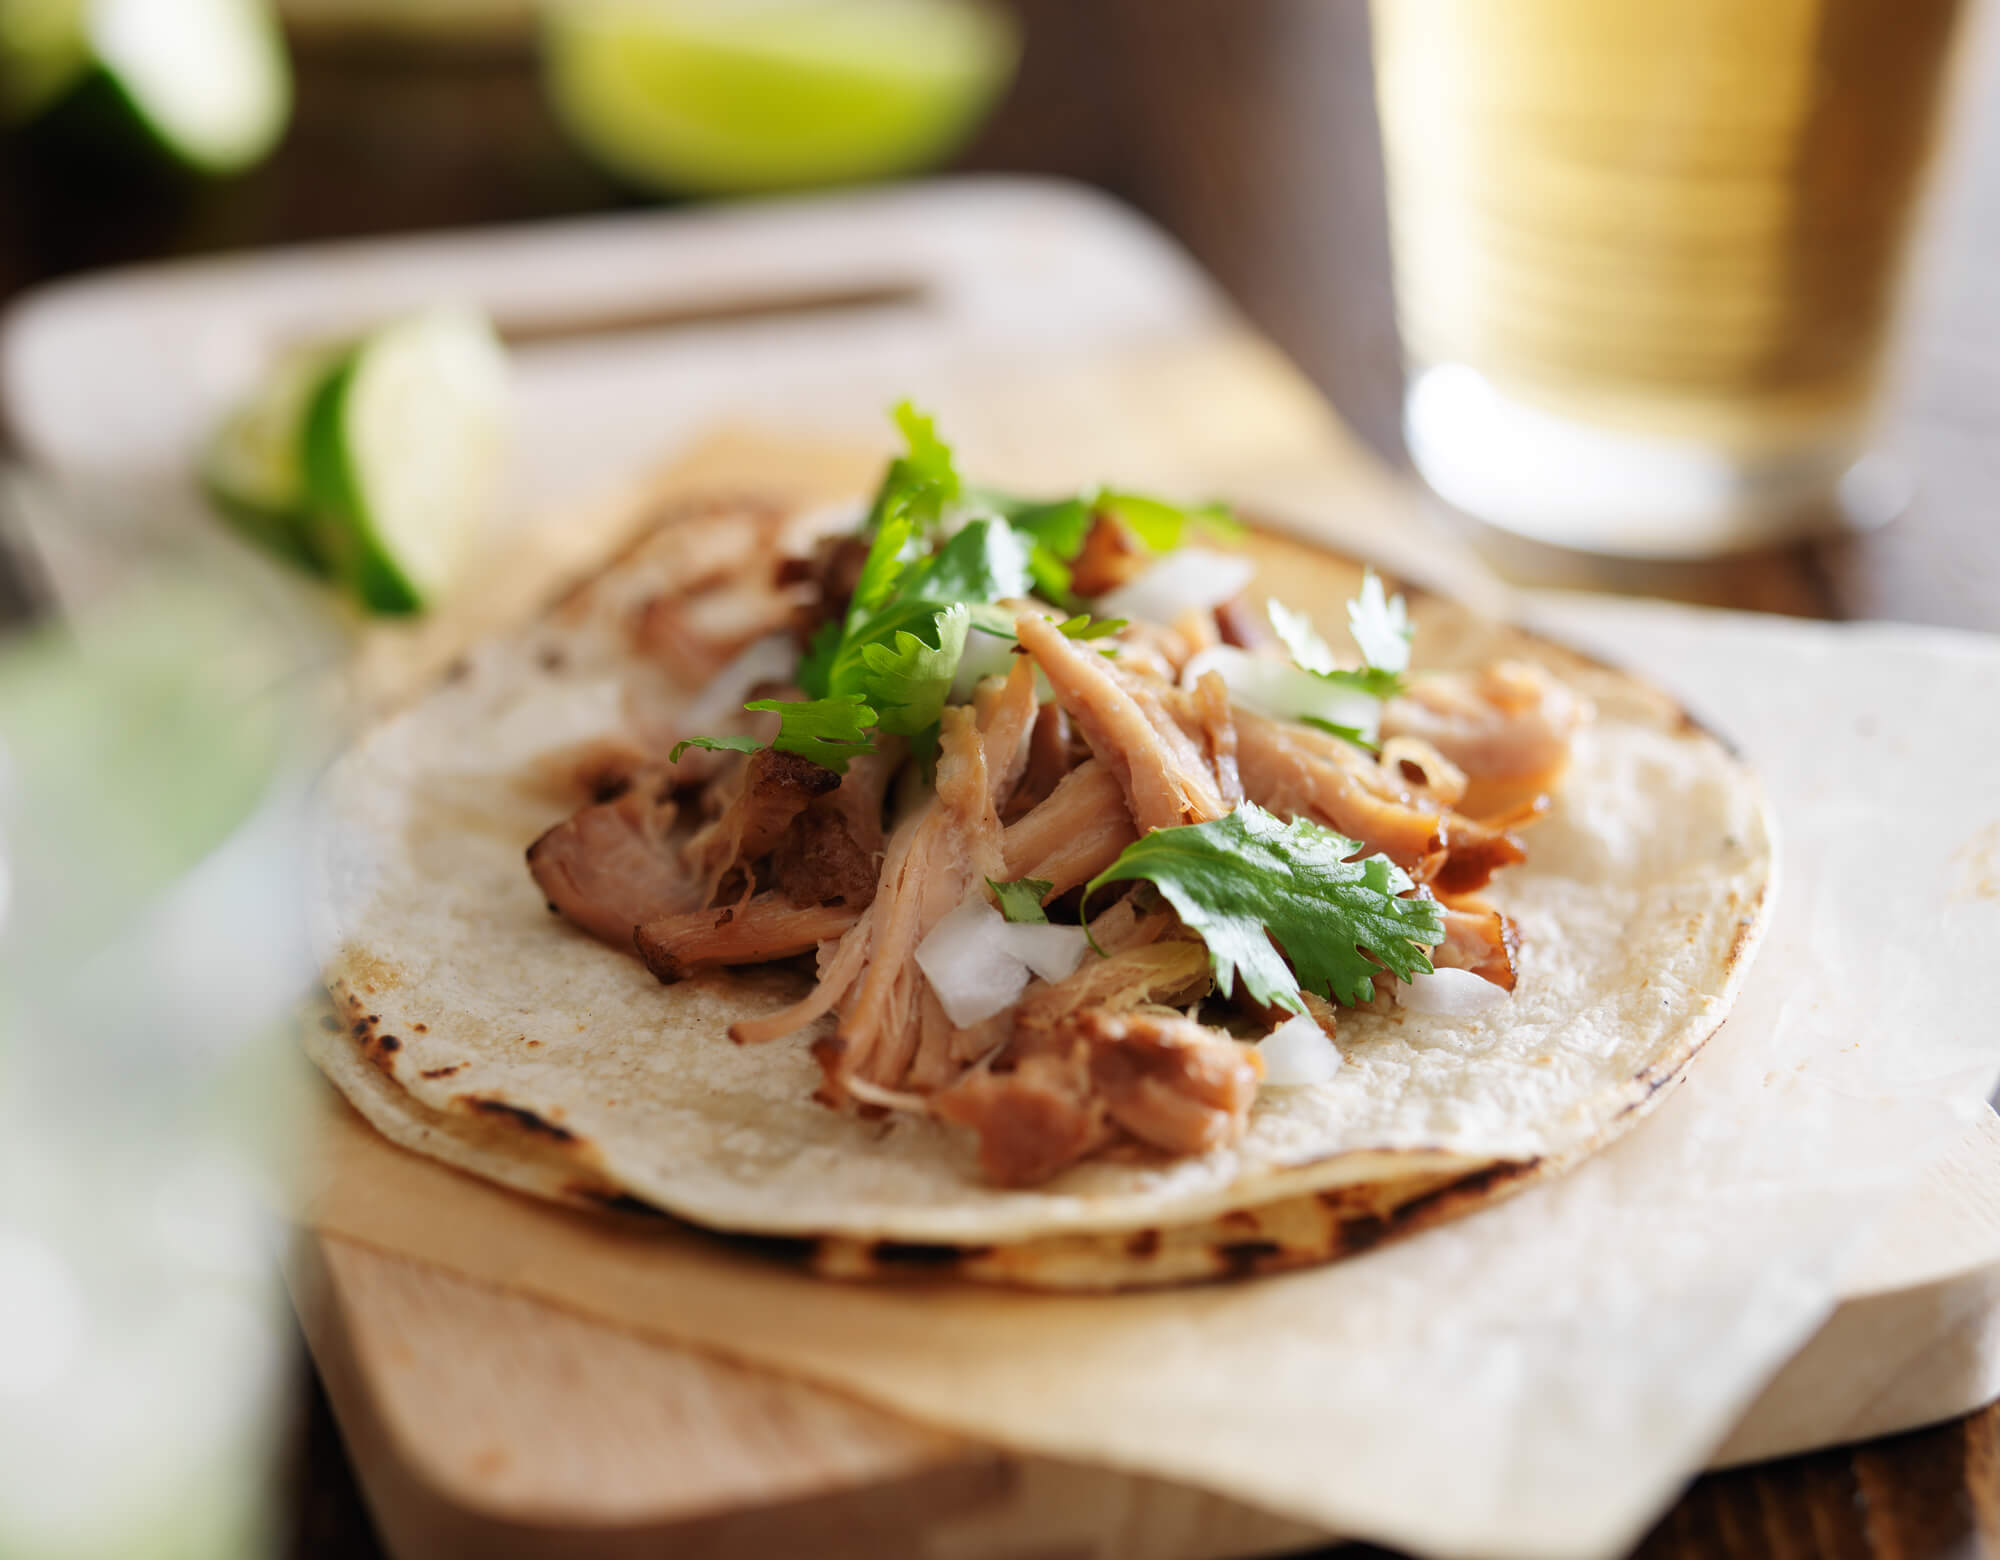 I'm always on the lookout for ways to use inexpensive cuts of meat in creative and delicious ways. These Trim Healthy Mama Slow cooker Carnitas fit the fill exactly. Pair them with healthy sides, and maybe a margarita for a yummy meals.